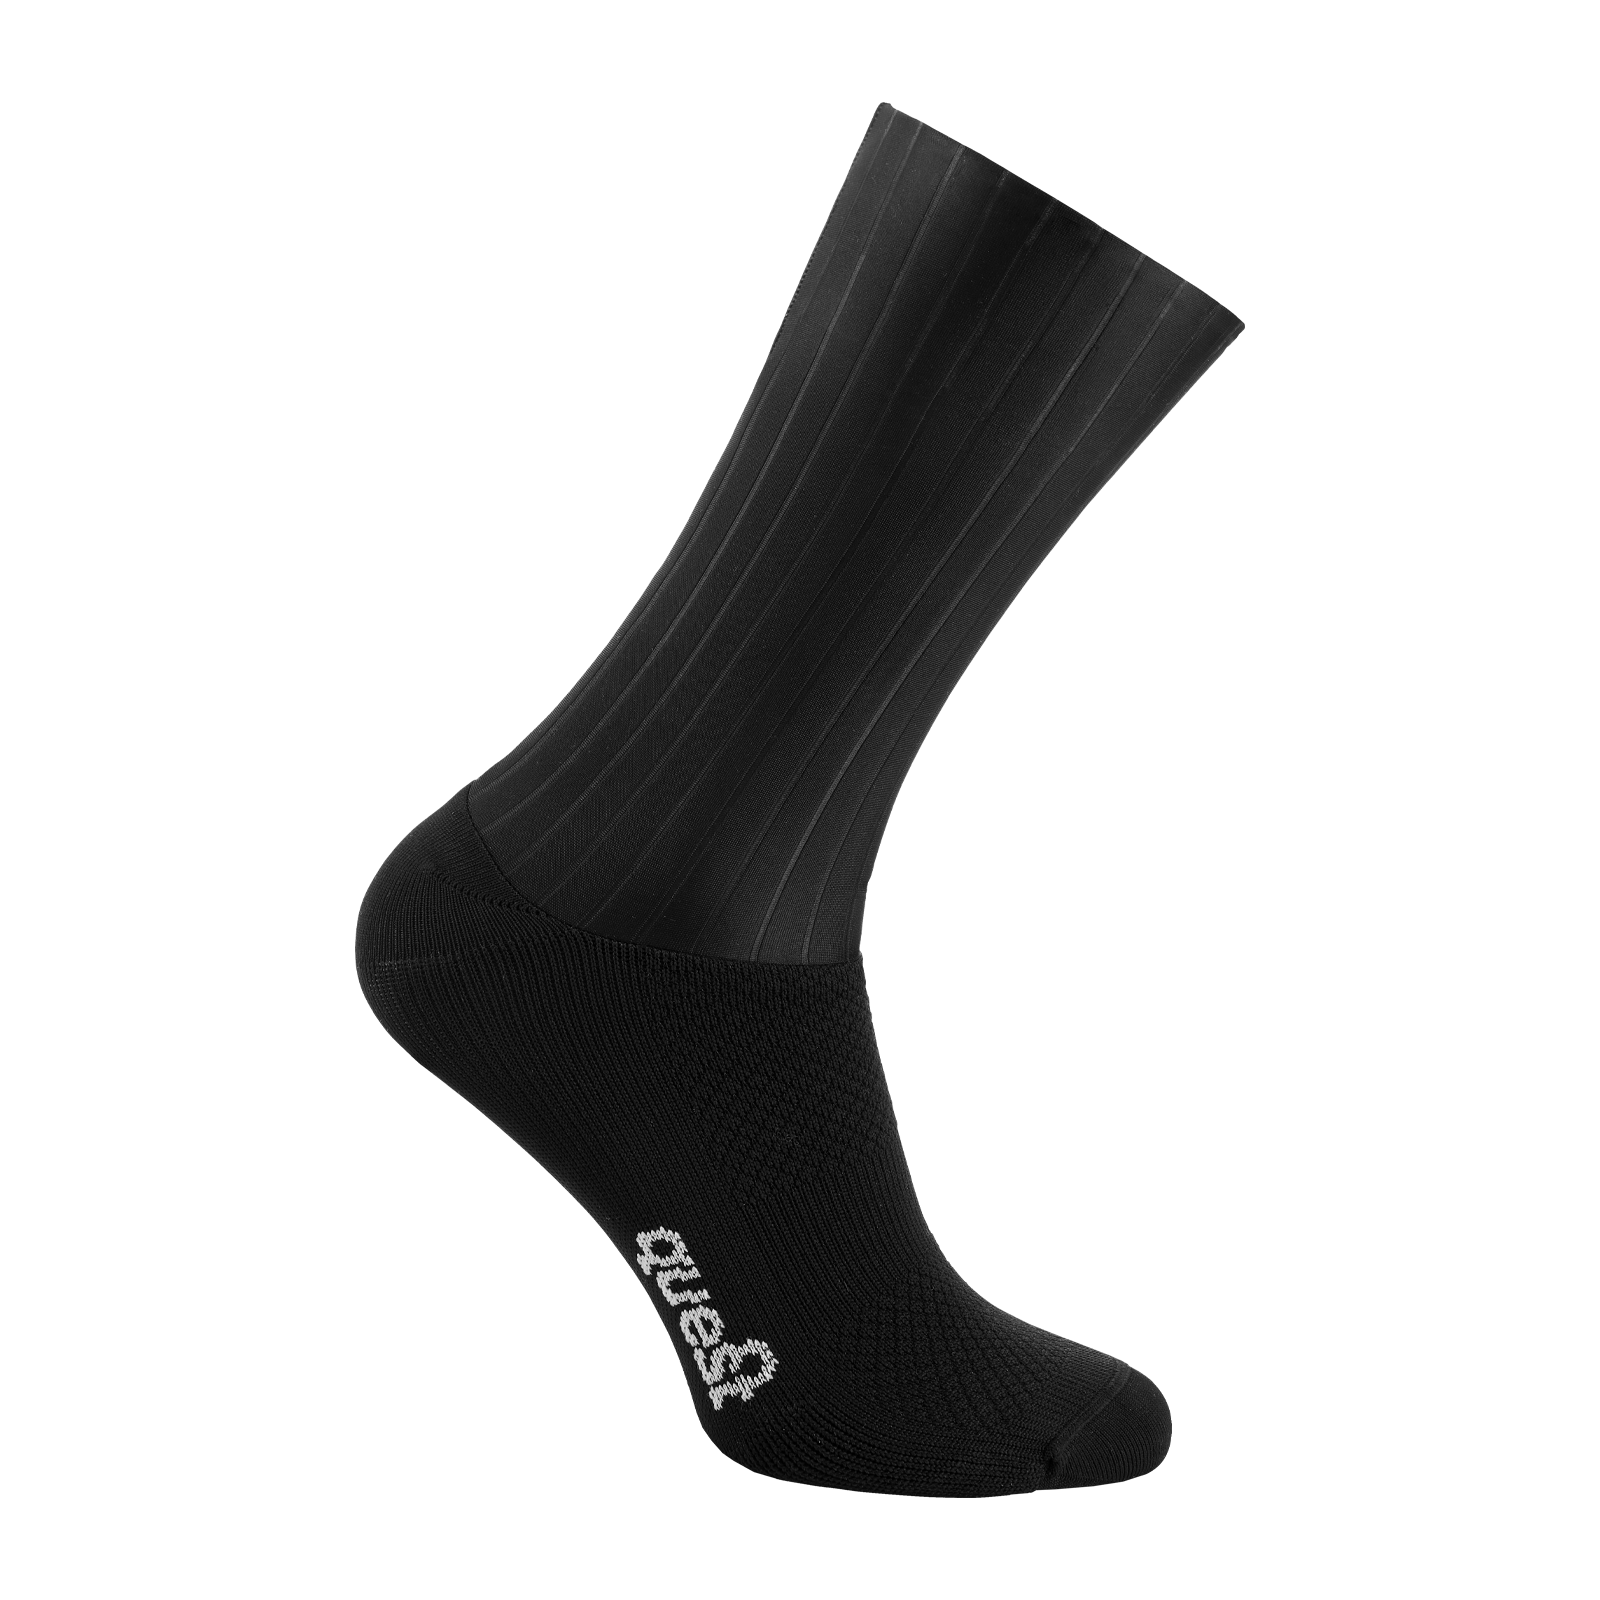 Aero Socks - O*reo - questsport.shop